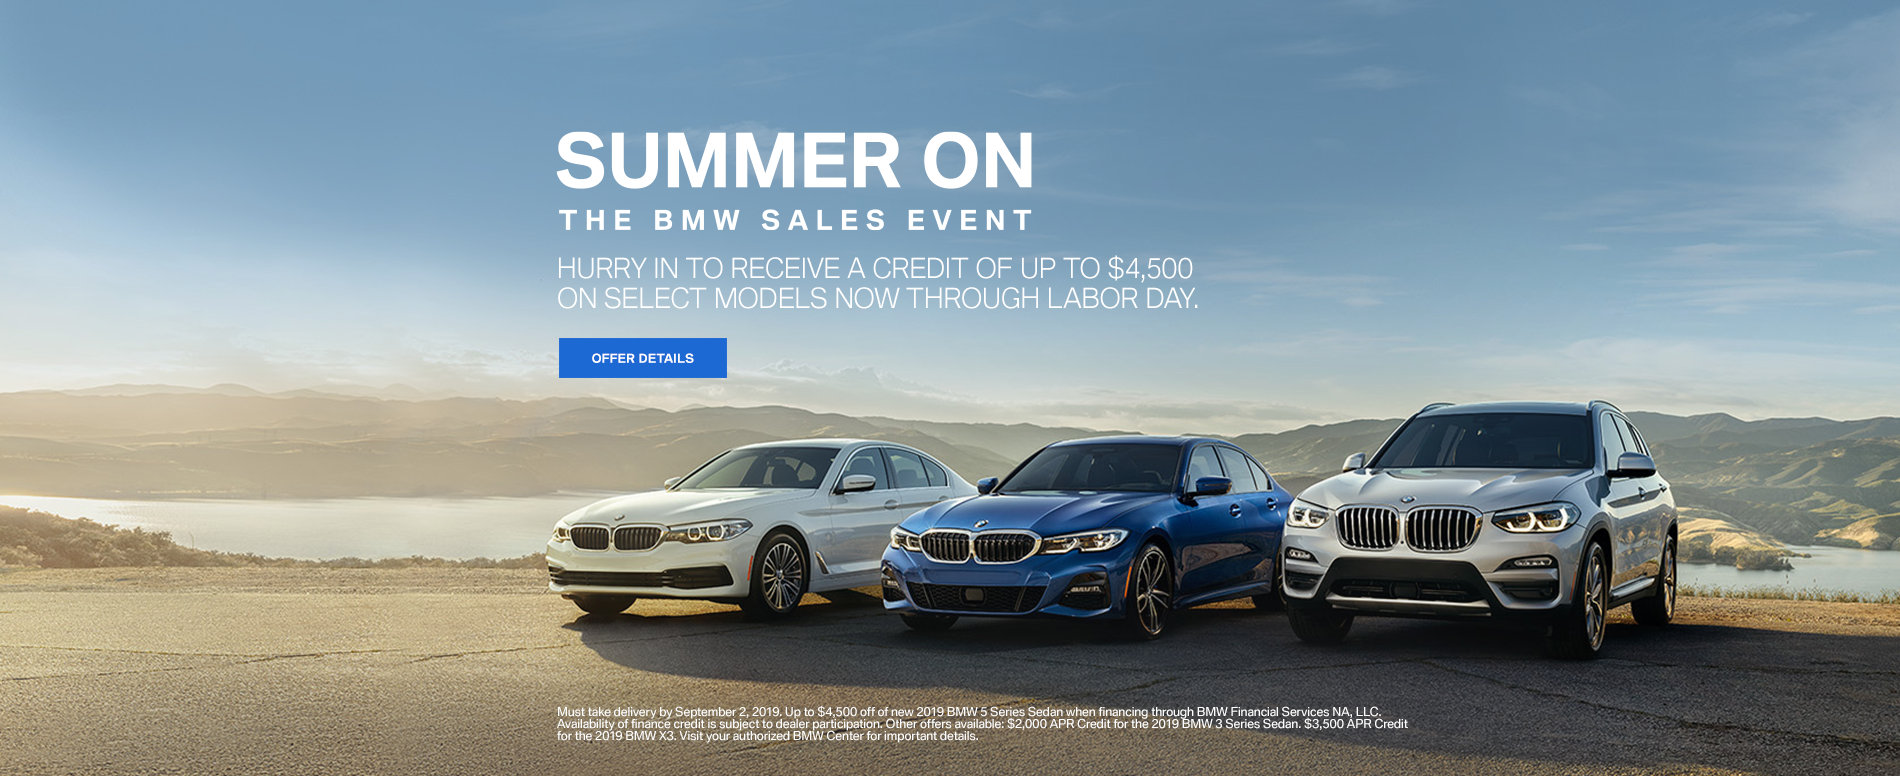 Bmw New Used Car Dealer Providence East Greenwich Cranston